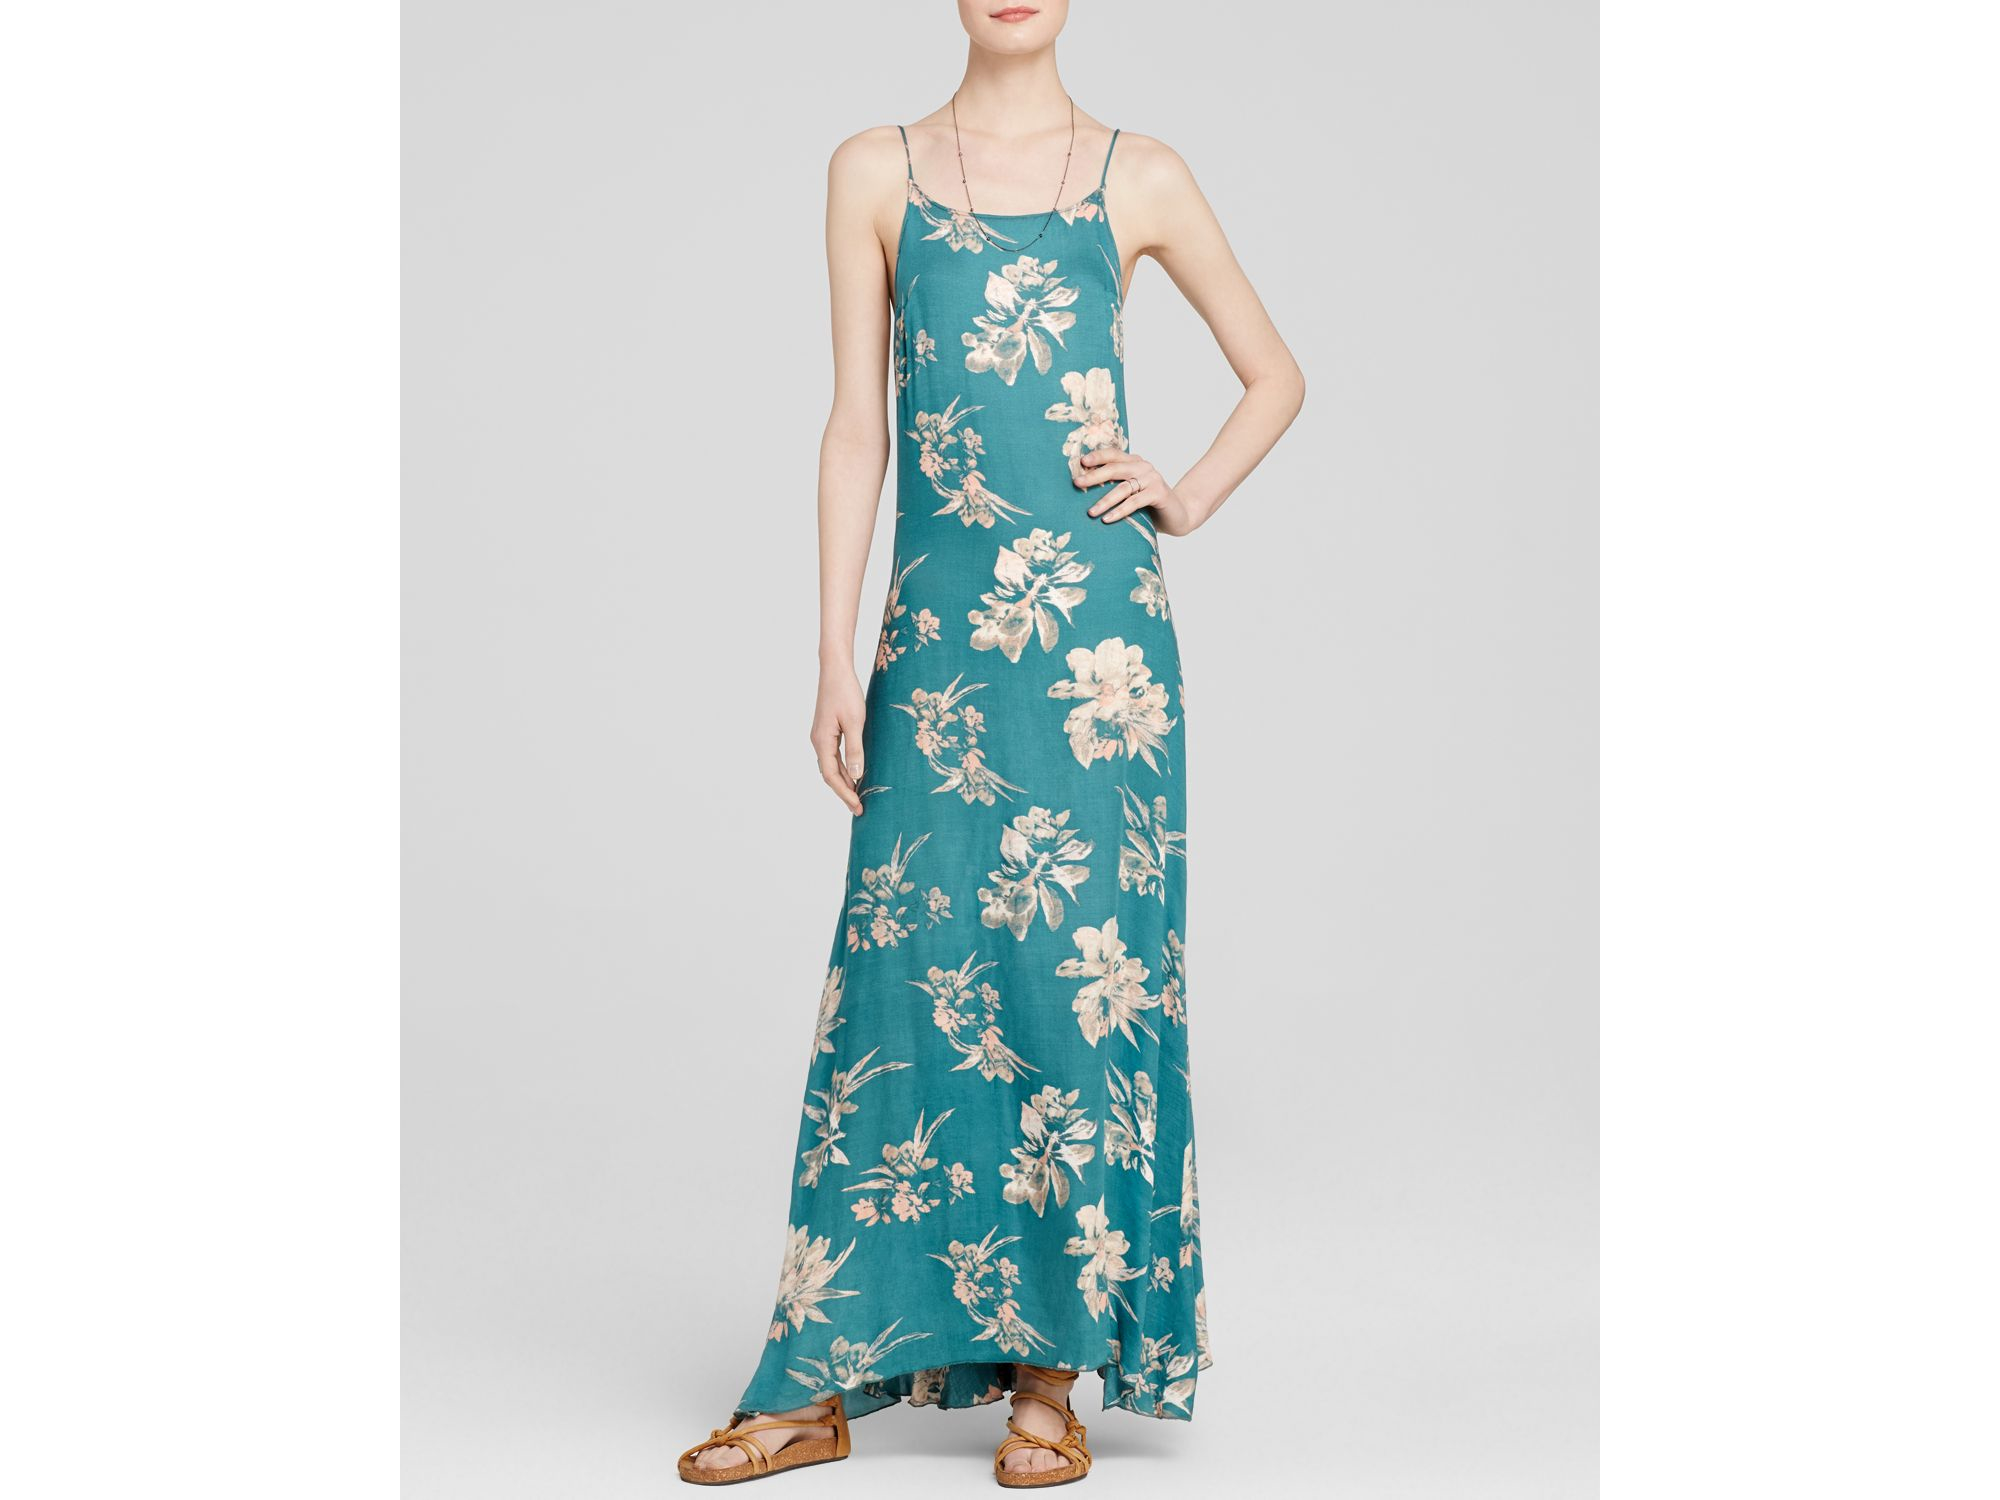 Free people Star Chasing Slip Dress in Green